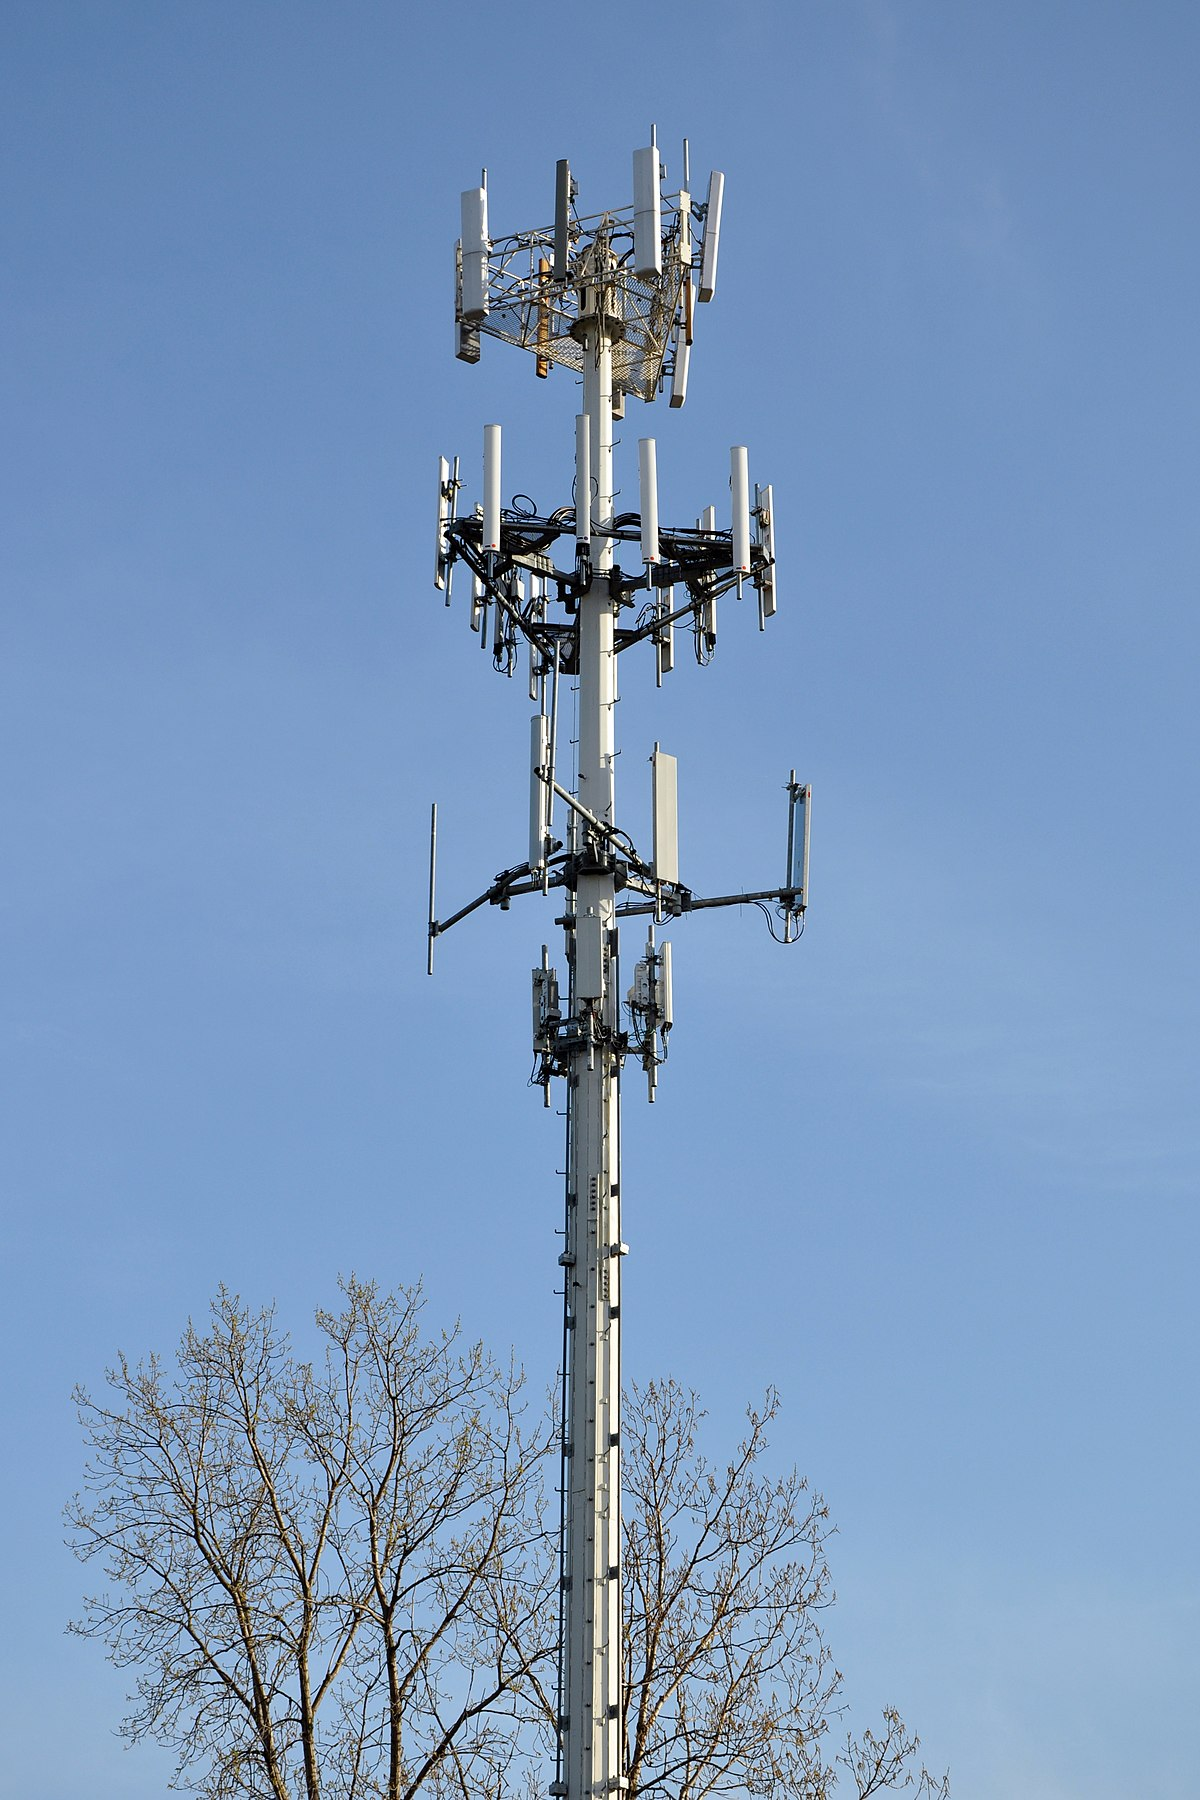 File:Cell Phone Tower jpg - Wikimedia Commons